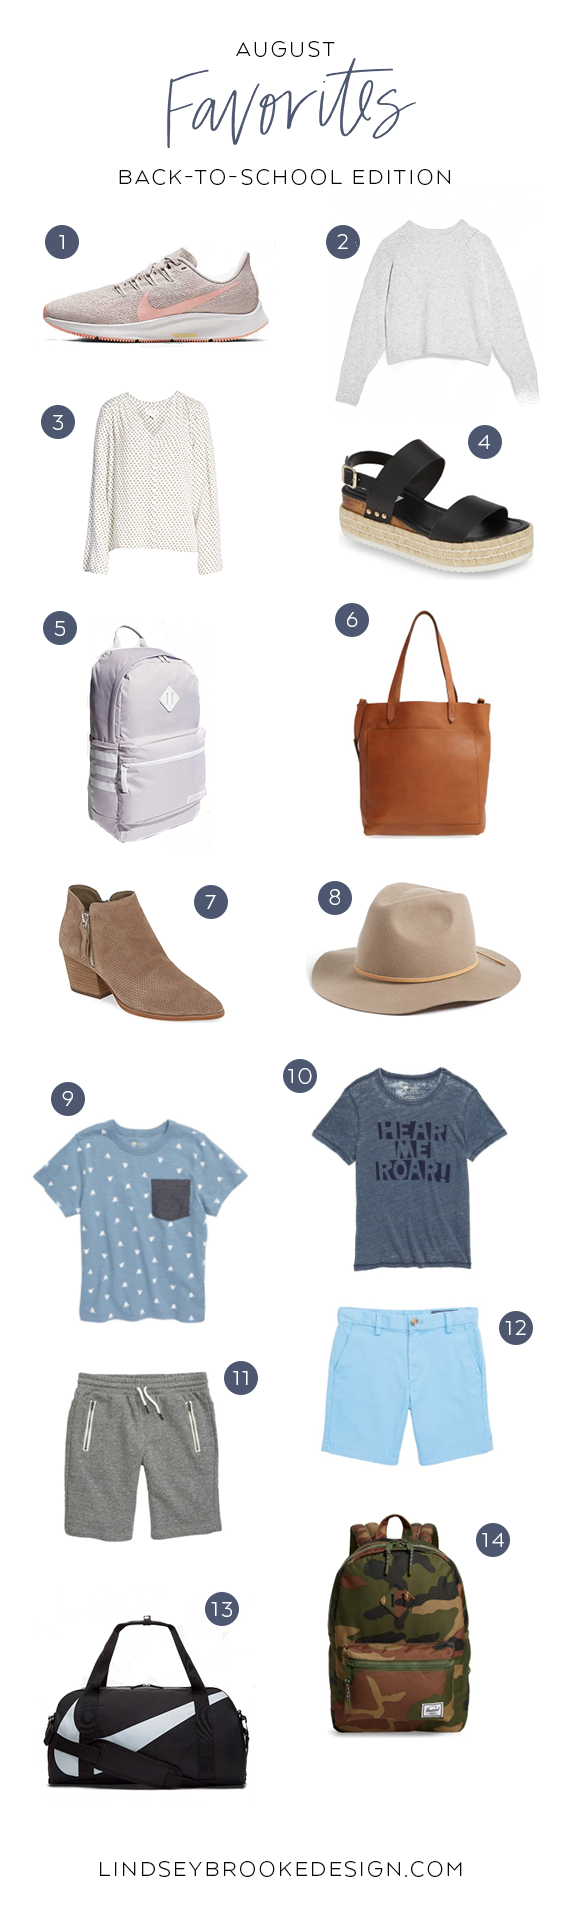 August Favorites- Back to School Edition.png